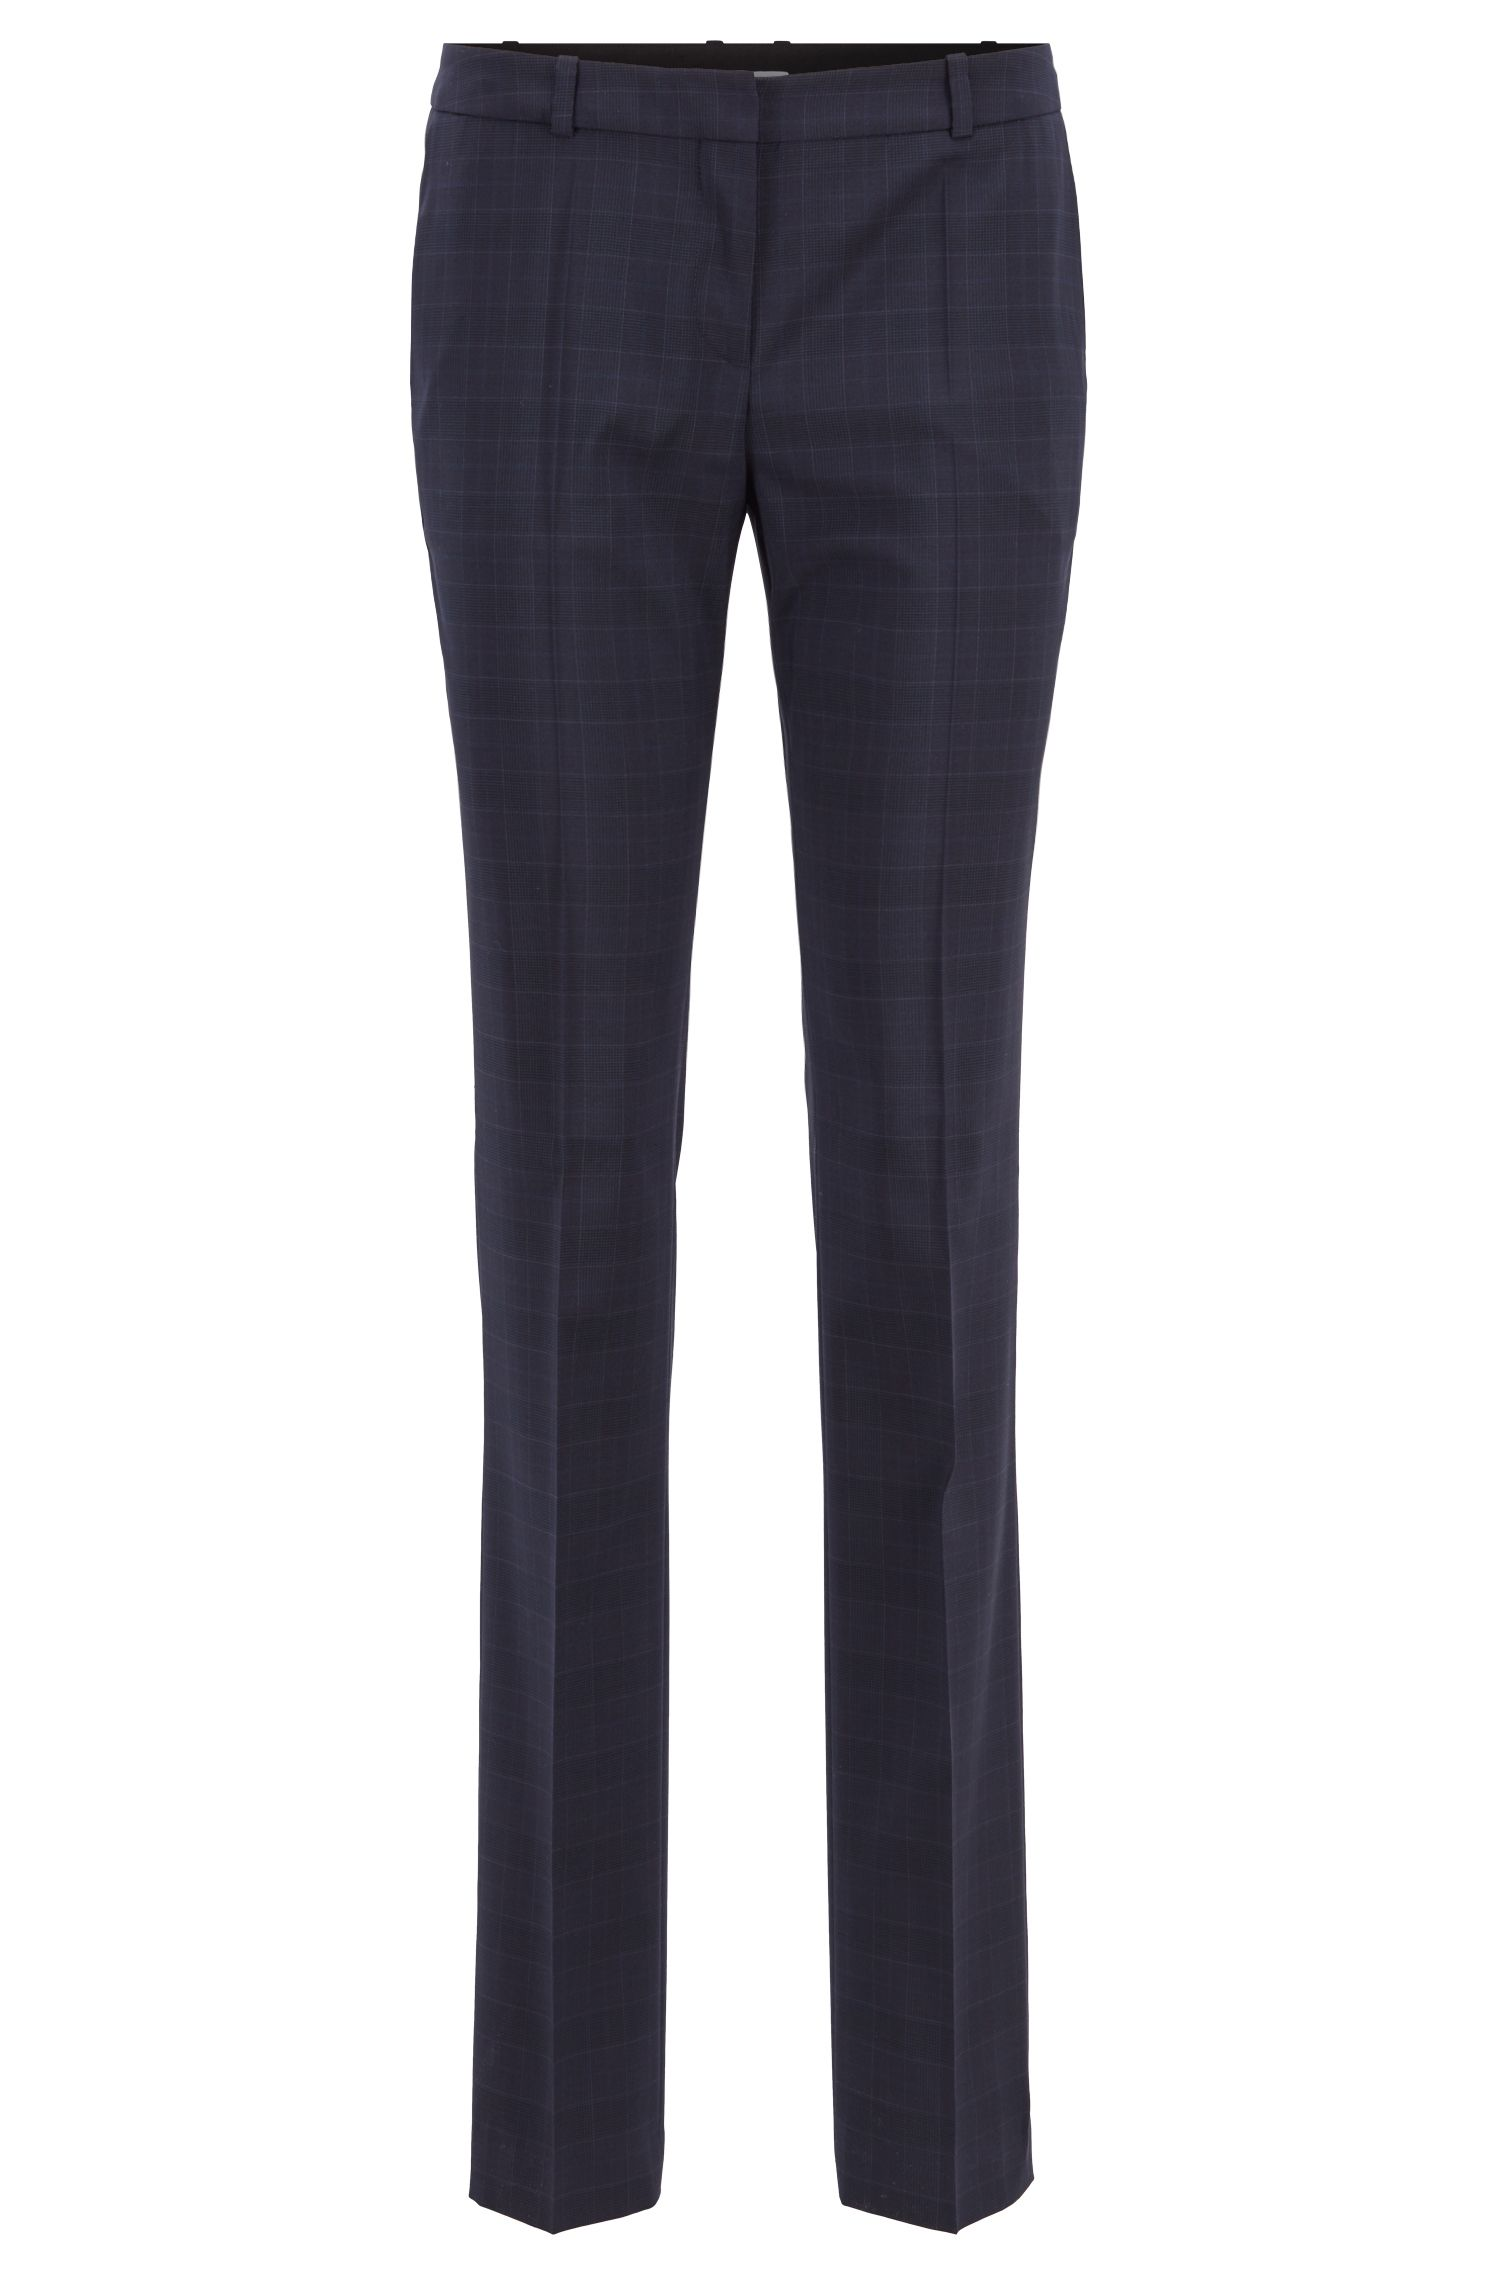 Extra-long regular-fit trousers in checked virgin wool, Patterned